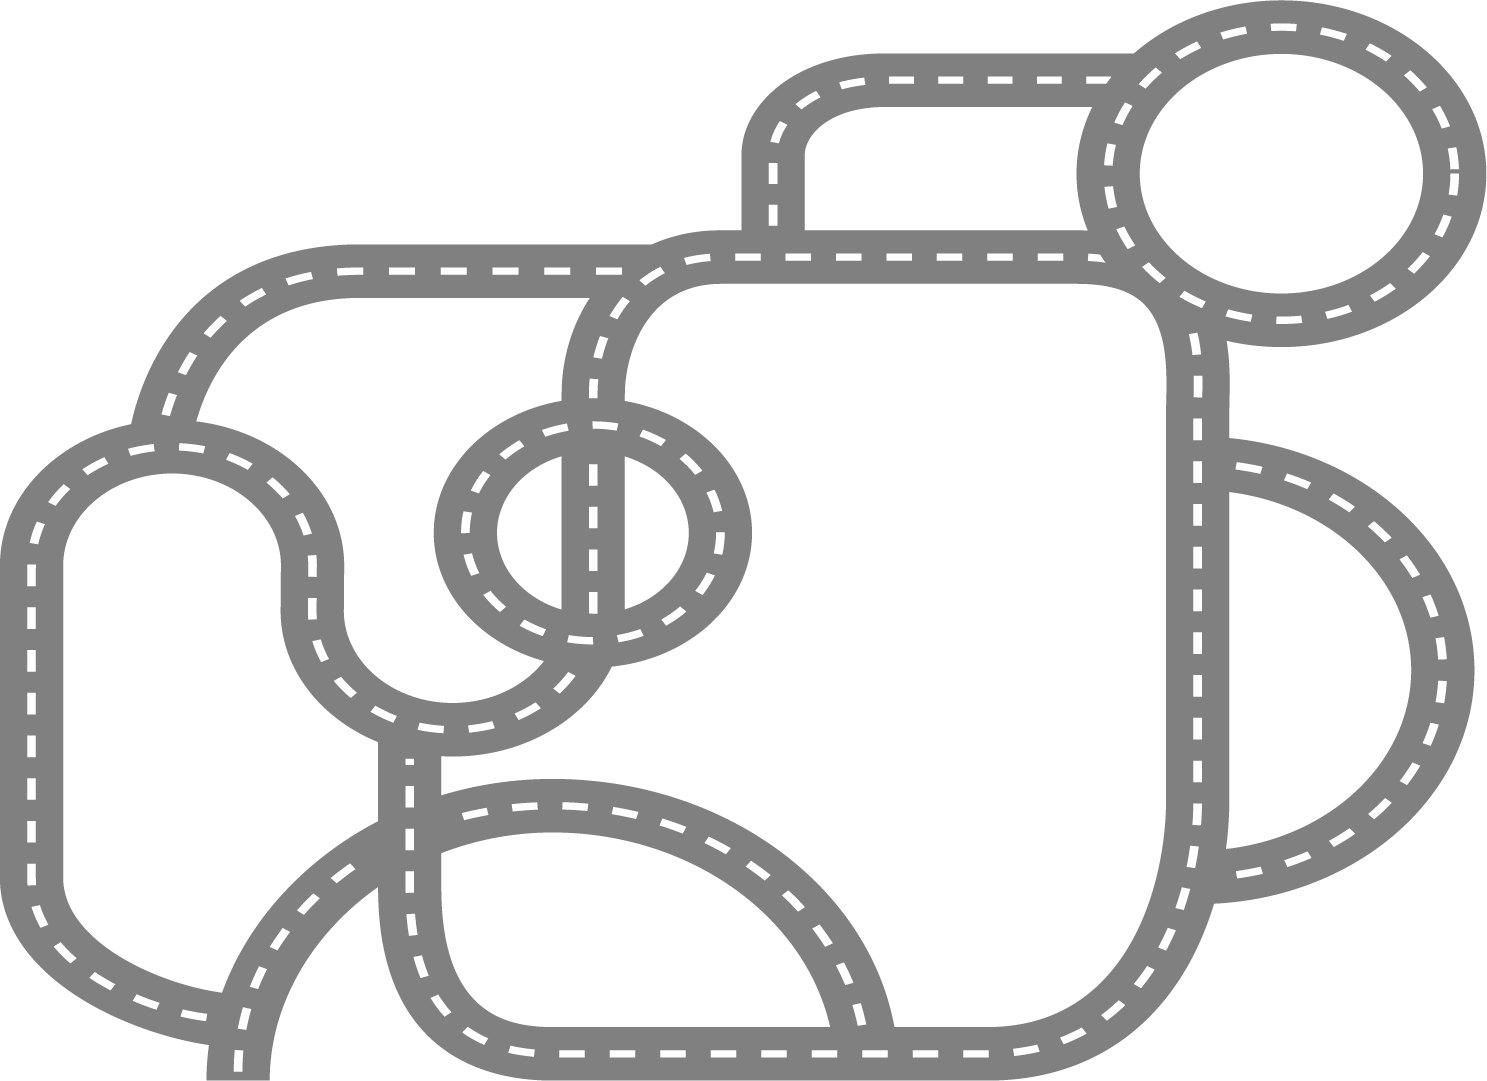 Roadway clipart race track road Car Etsy Wall race track